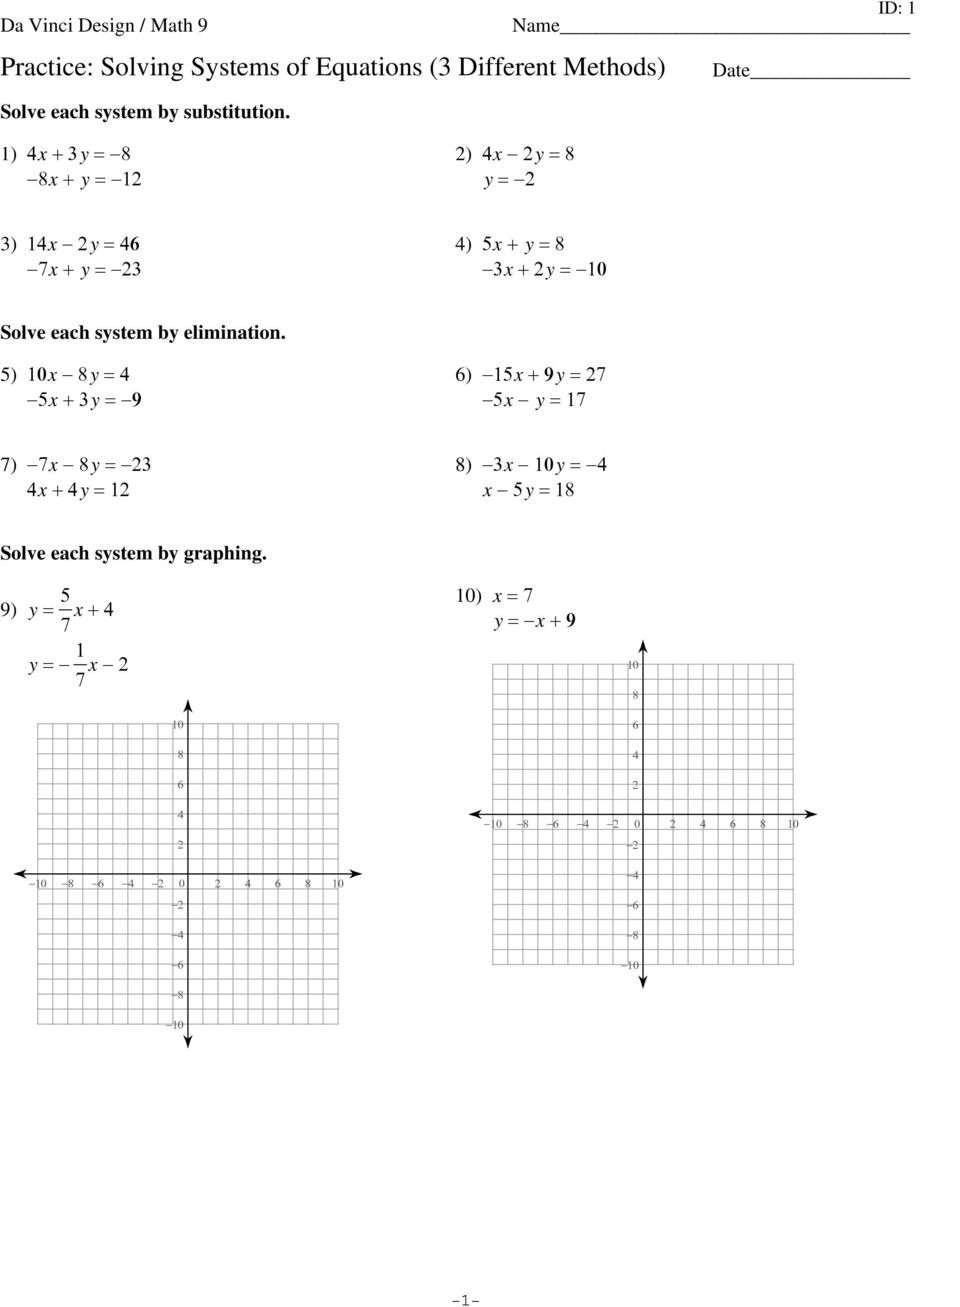 Substitution Method Worksheet Answers Worksheets 41 solving System Equations by Substitution